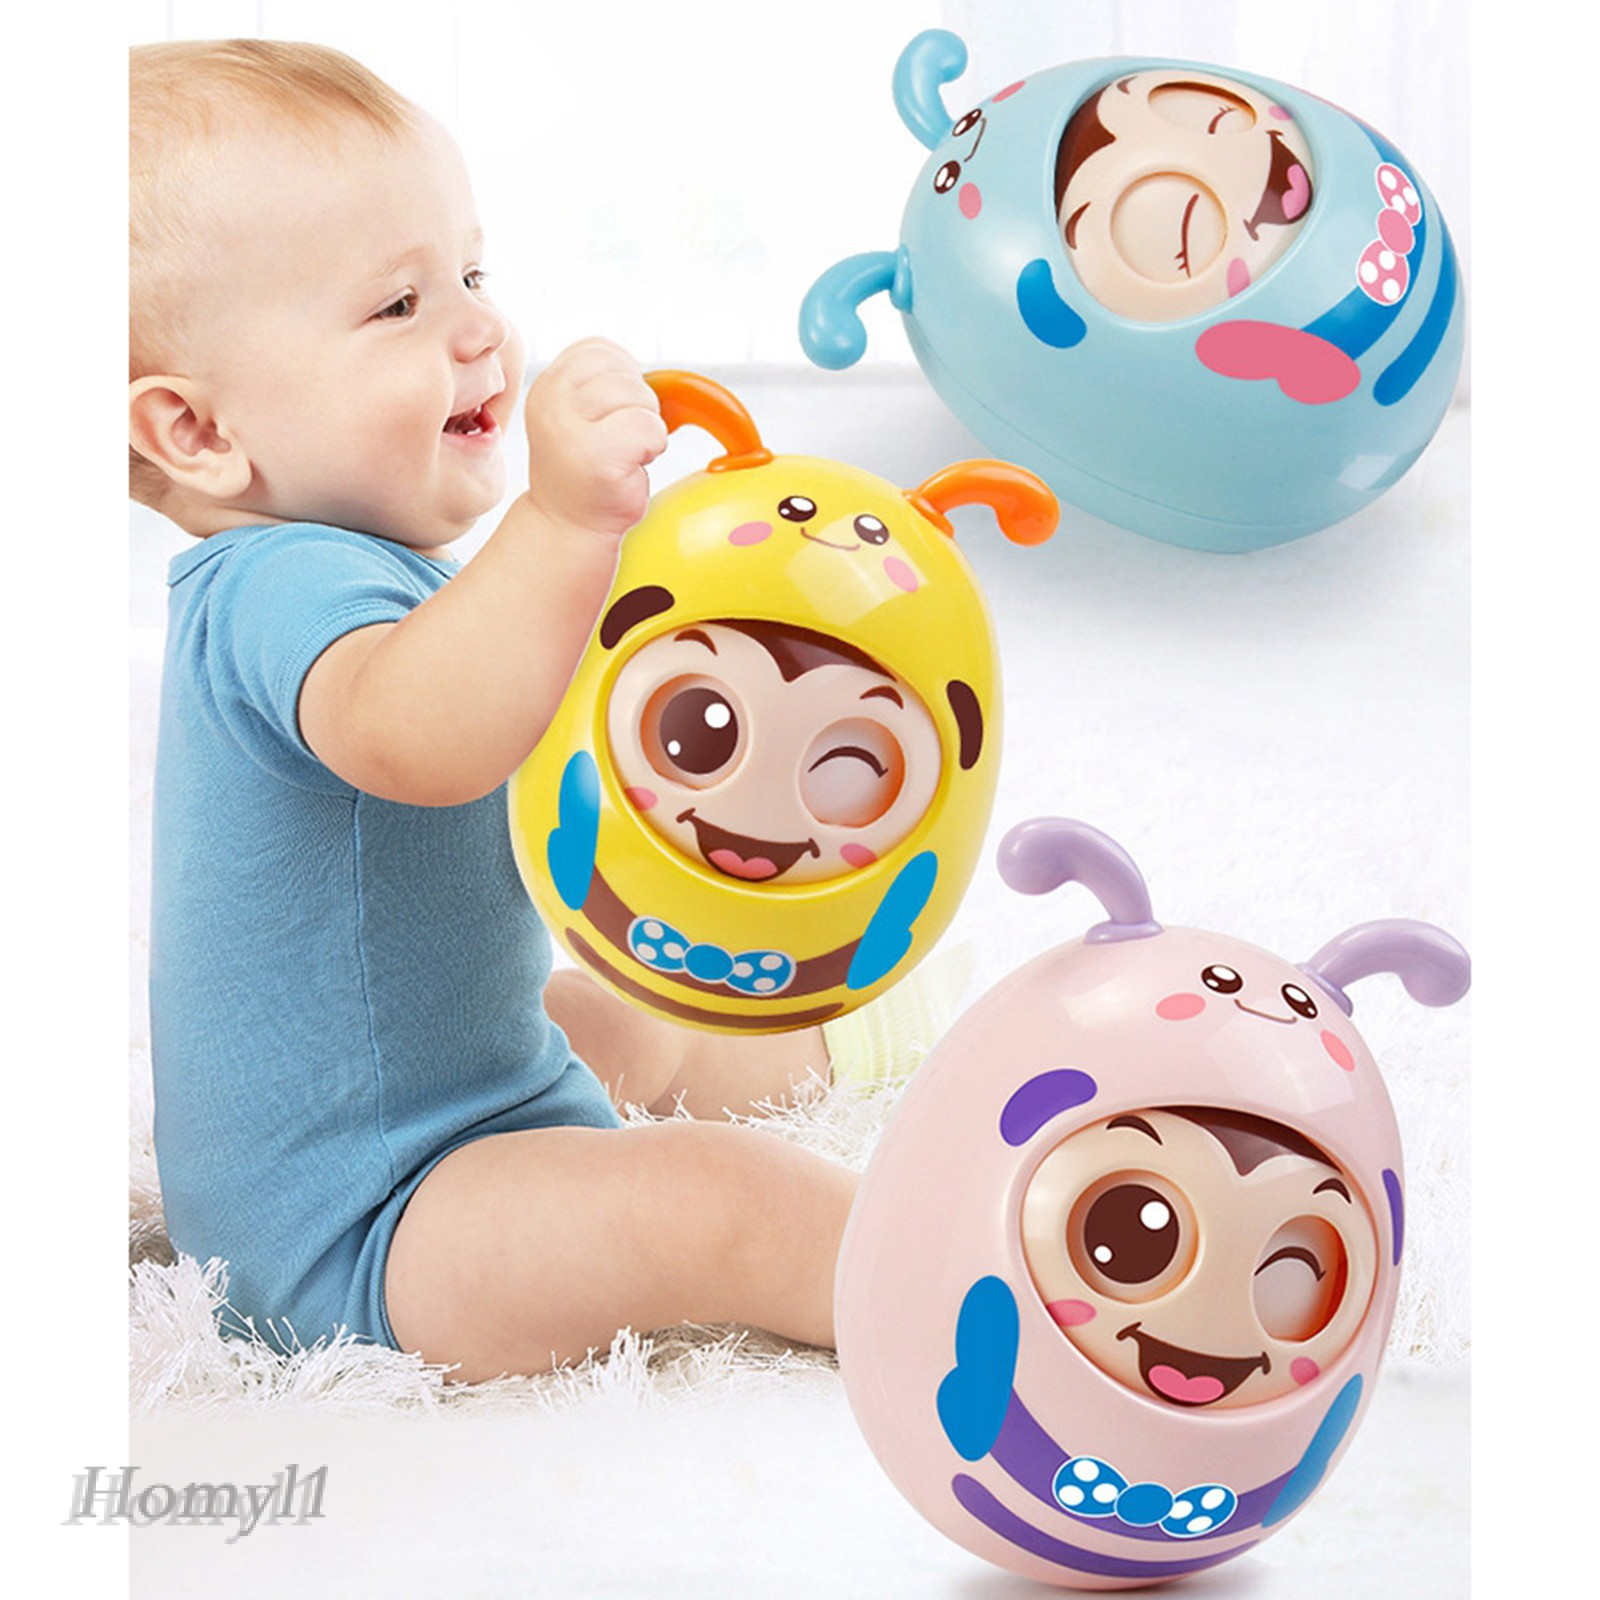 [HOMYL1] Safety Roly-Poly Tumbler Infant Baby Toys Best Gifts Tummy Time Toys